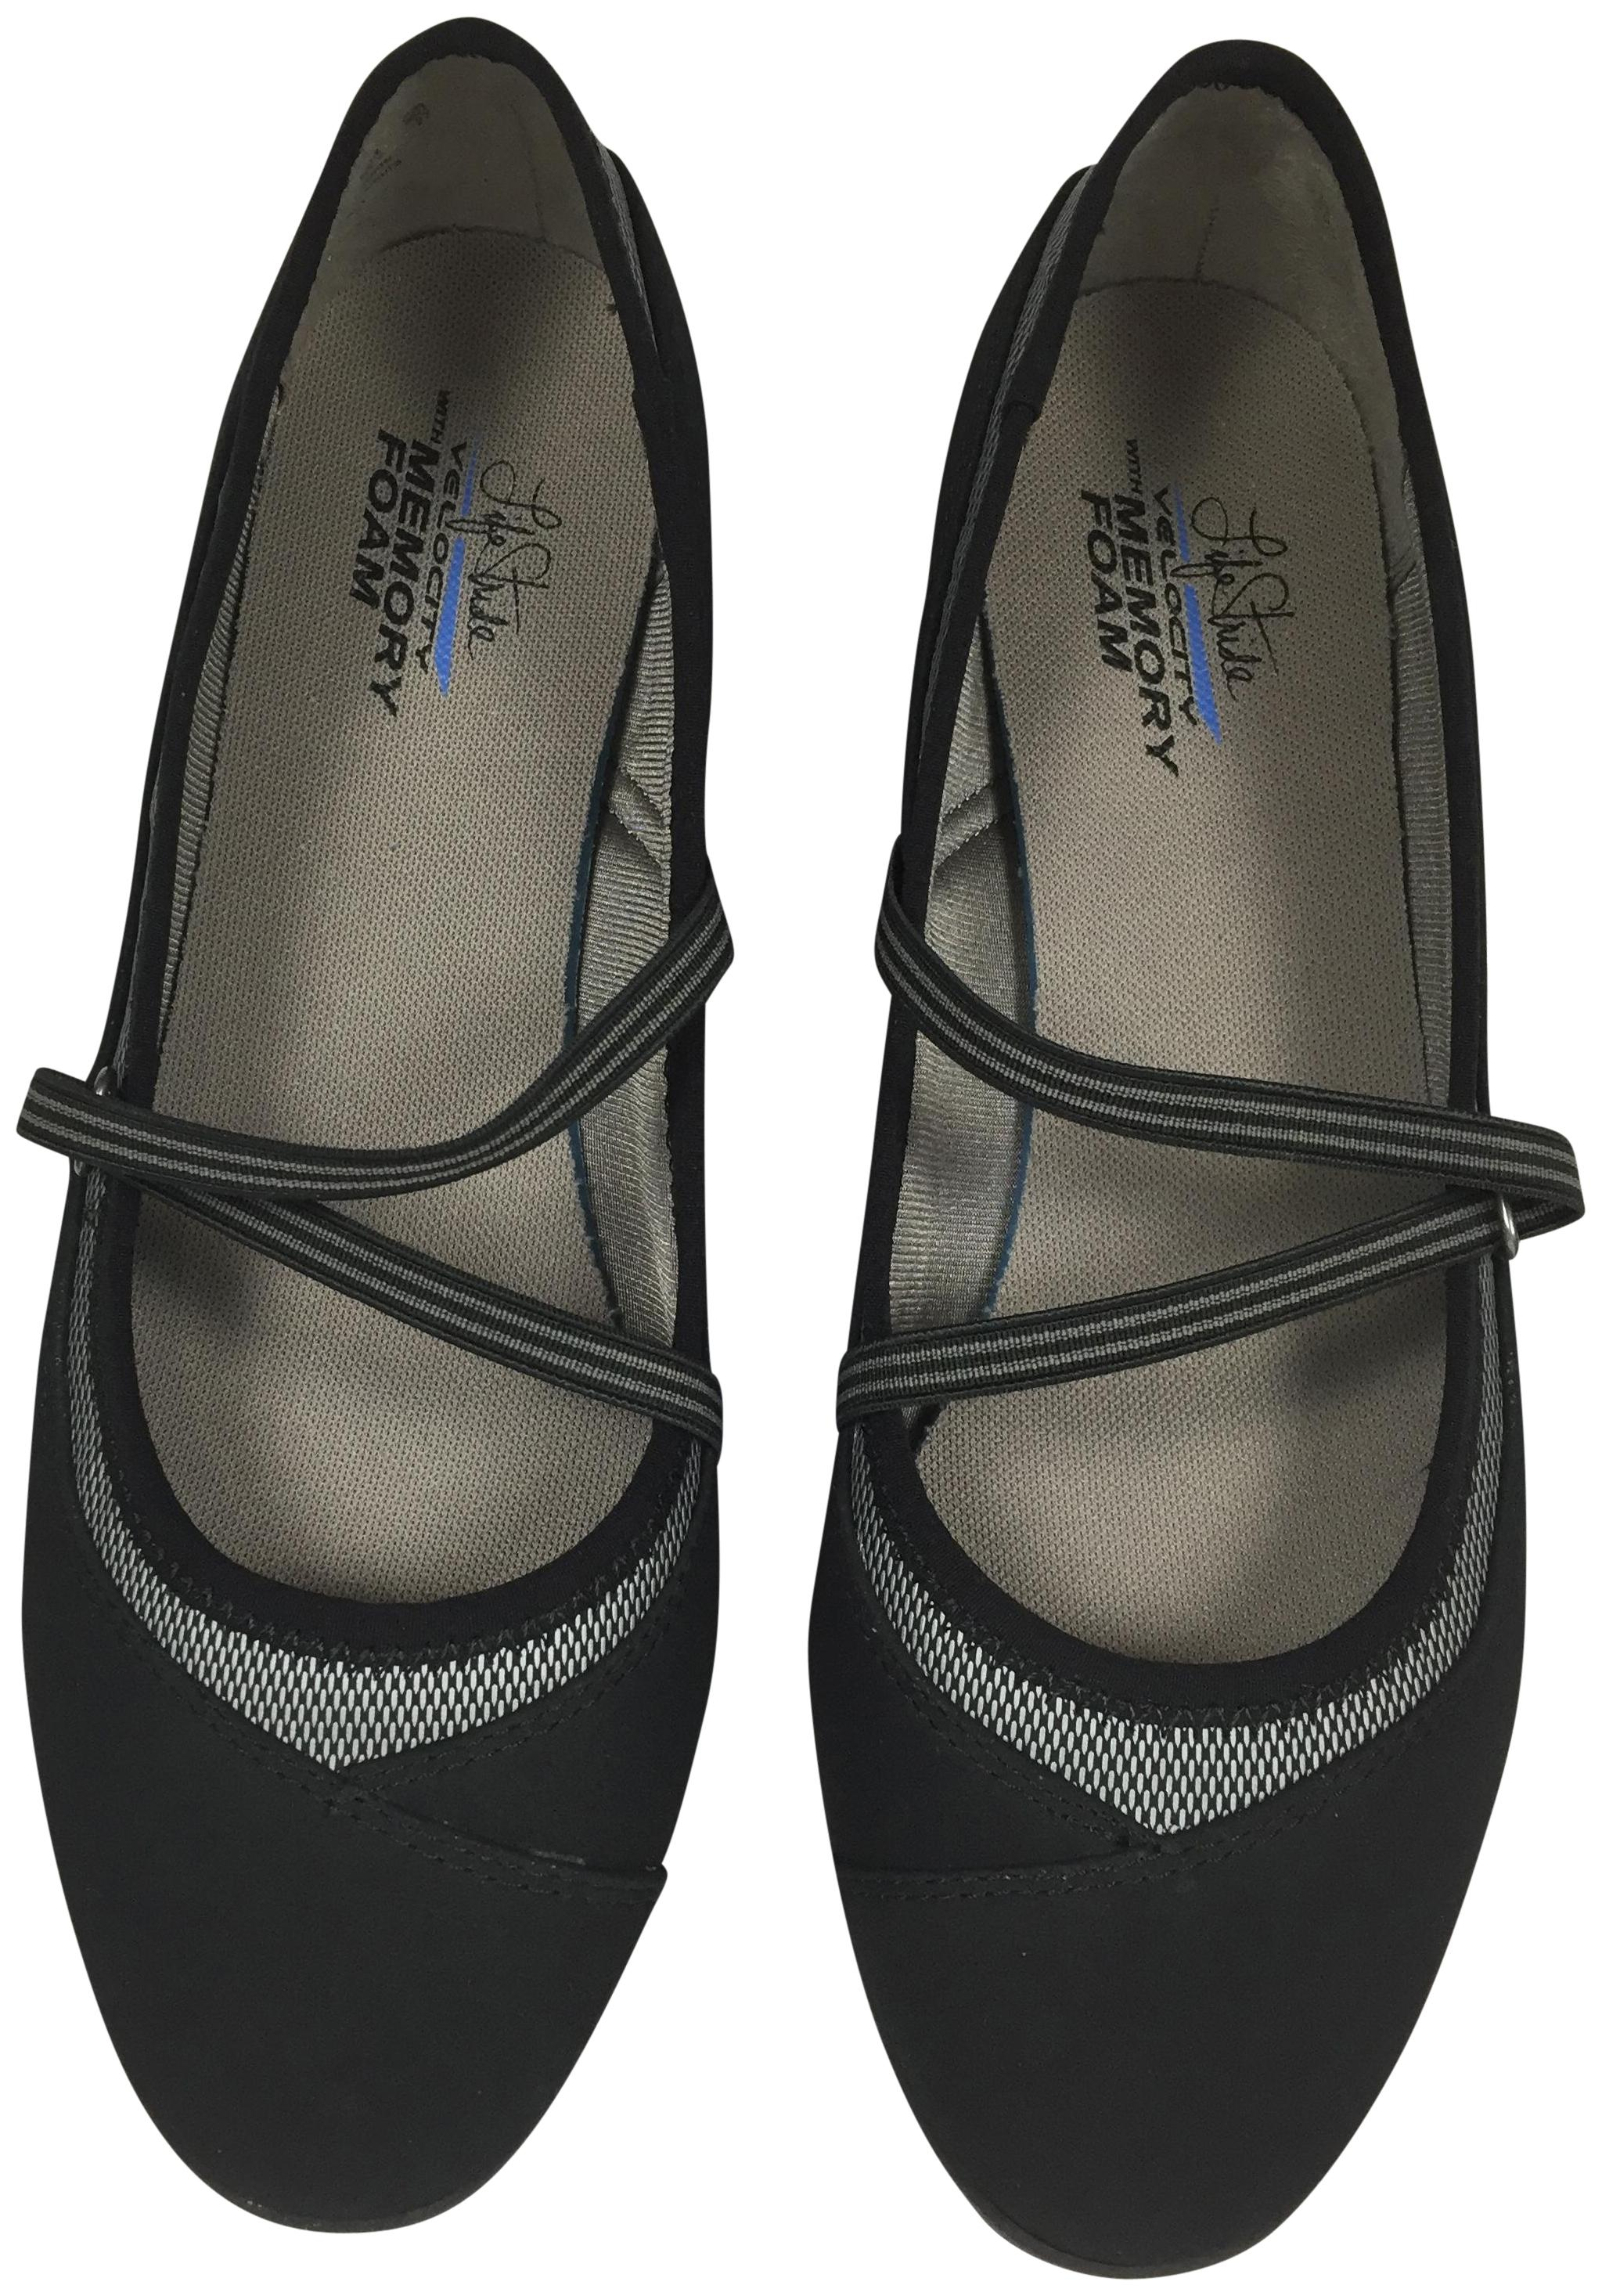 LifeStride Mary Jane Memory Foam Low Heel Black Flats ...